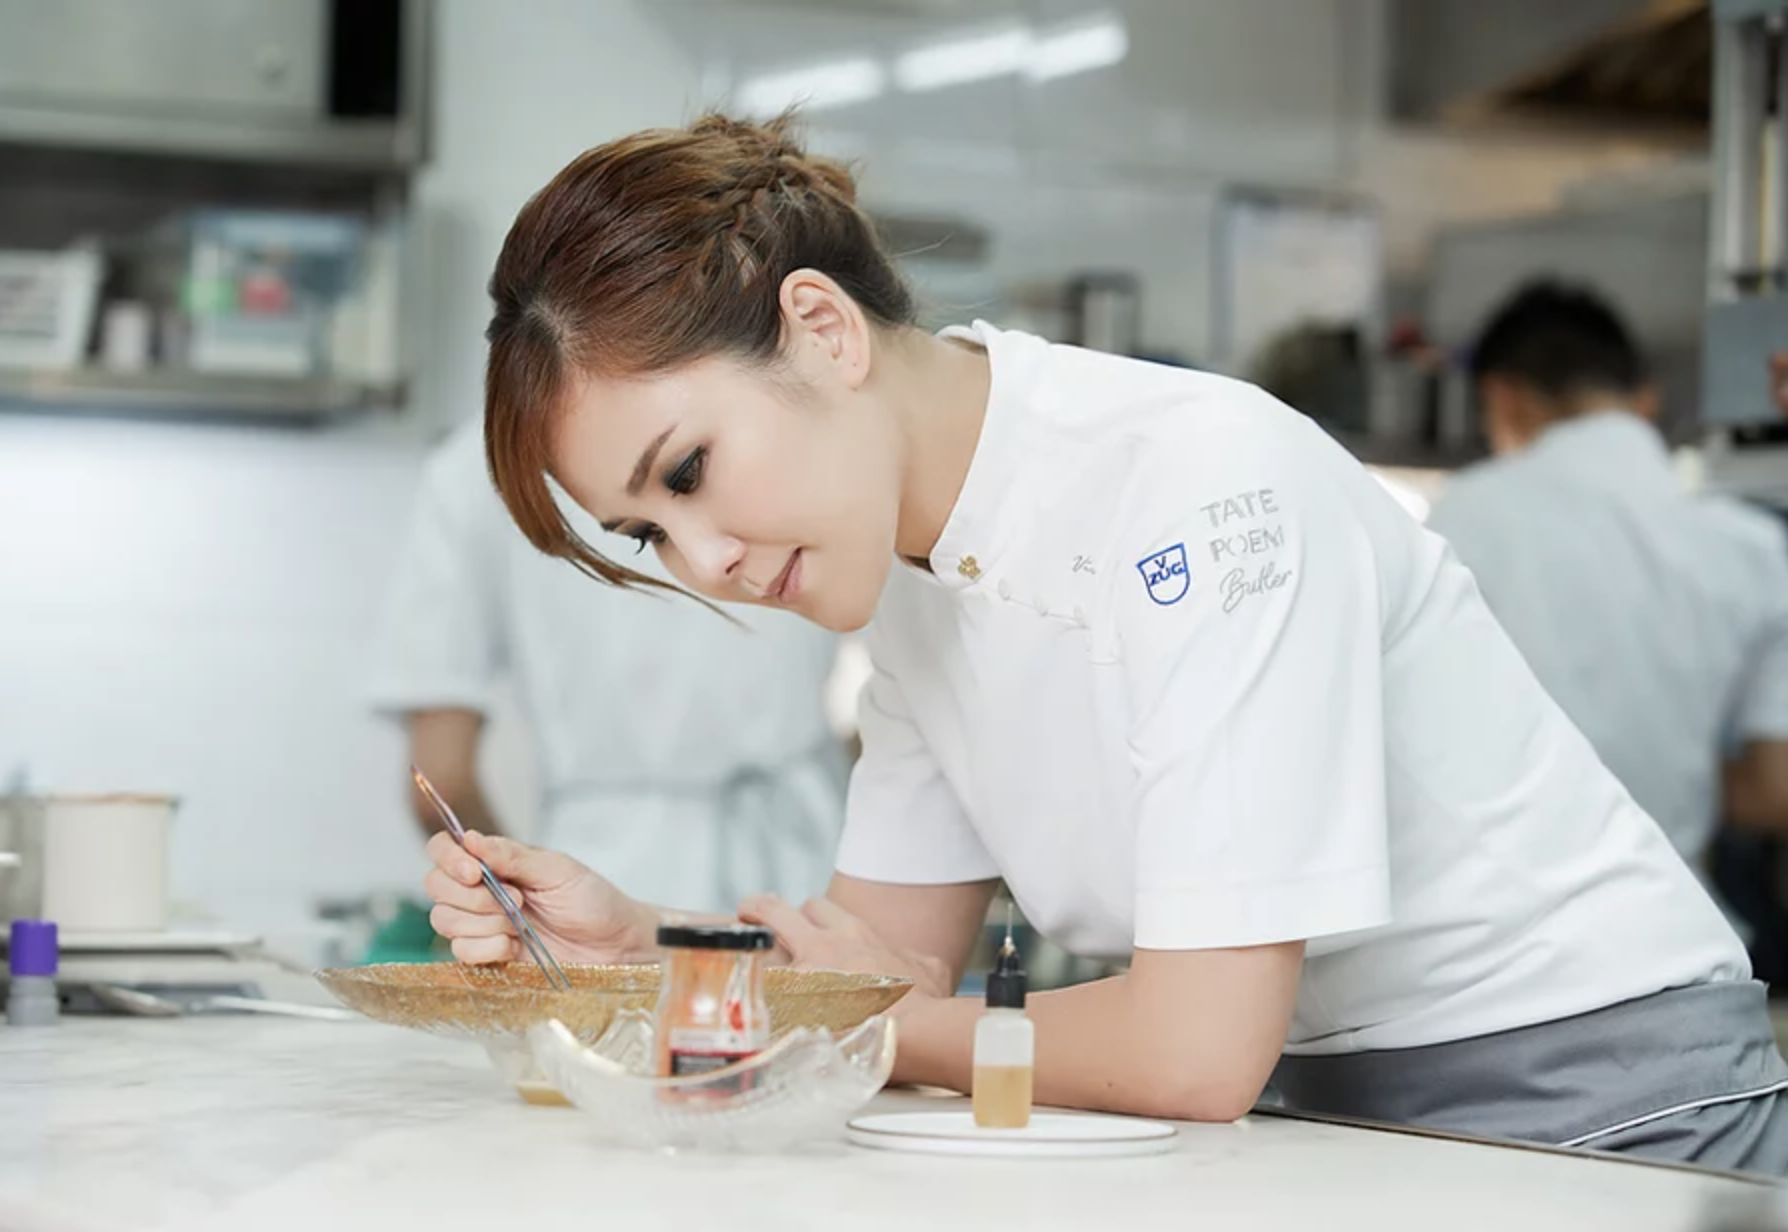 Vicky Lau, head chef and owner of Tate Dining Room